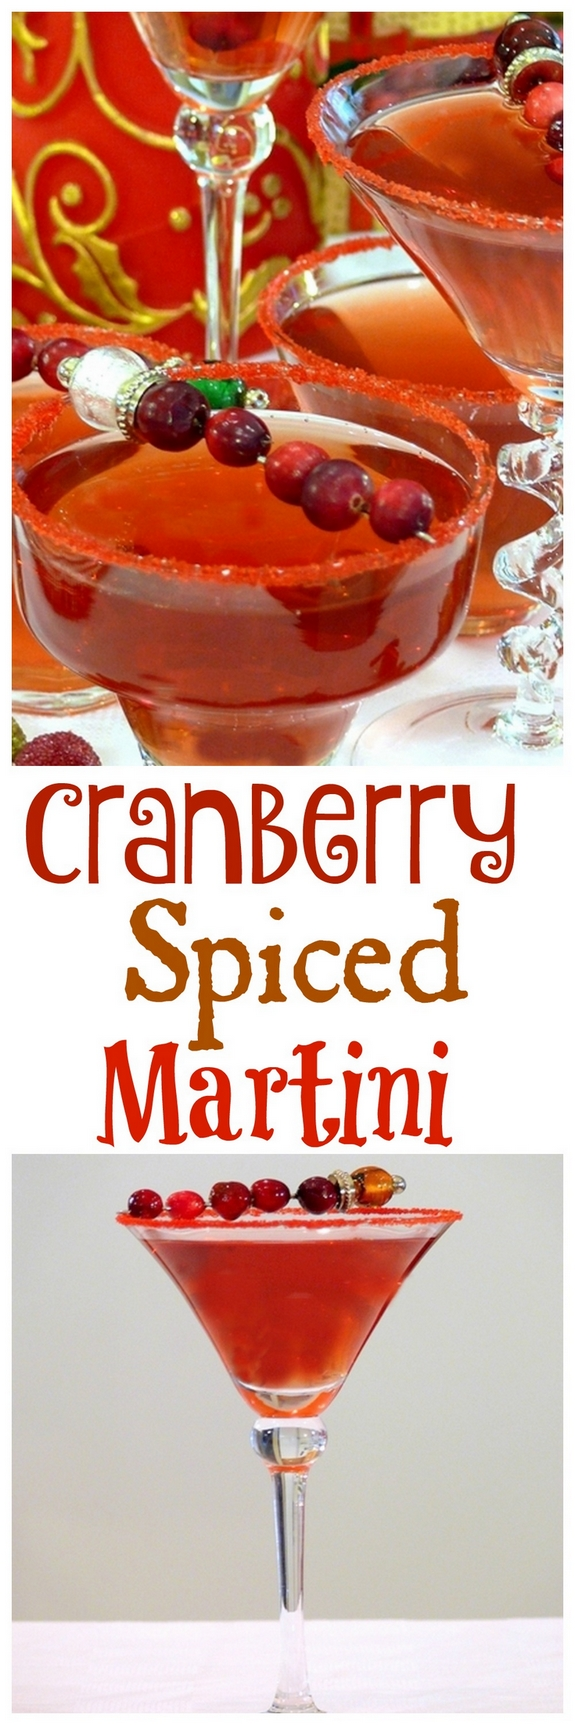 Cranberry Spiced Martini Cocktail